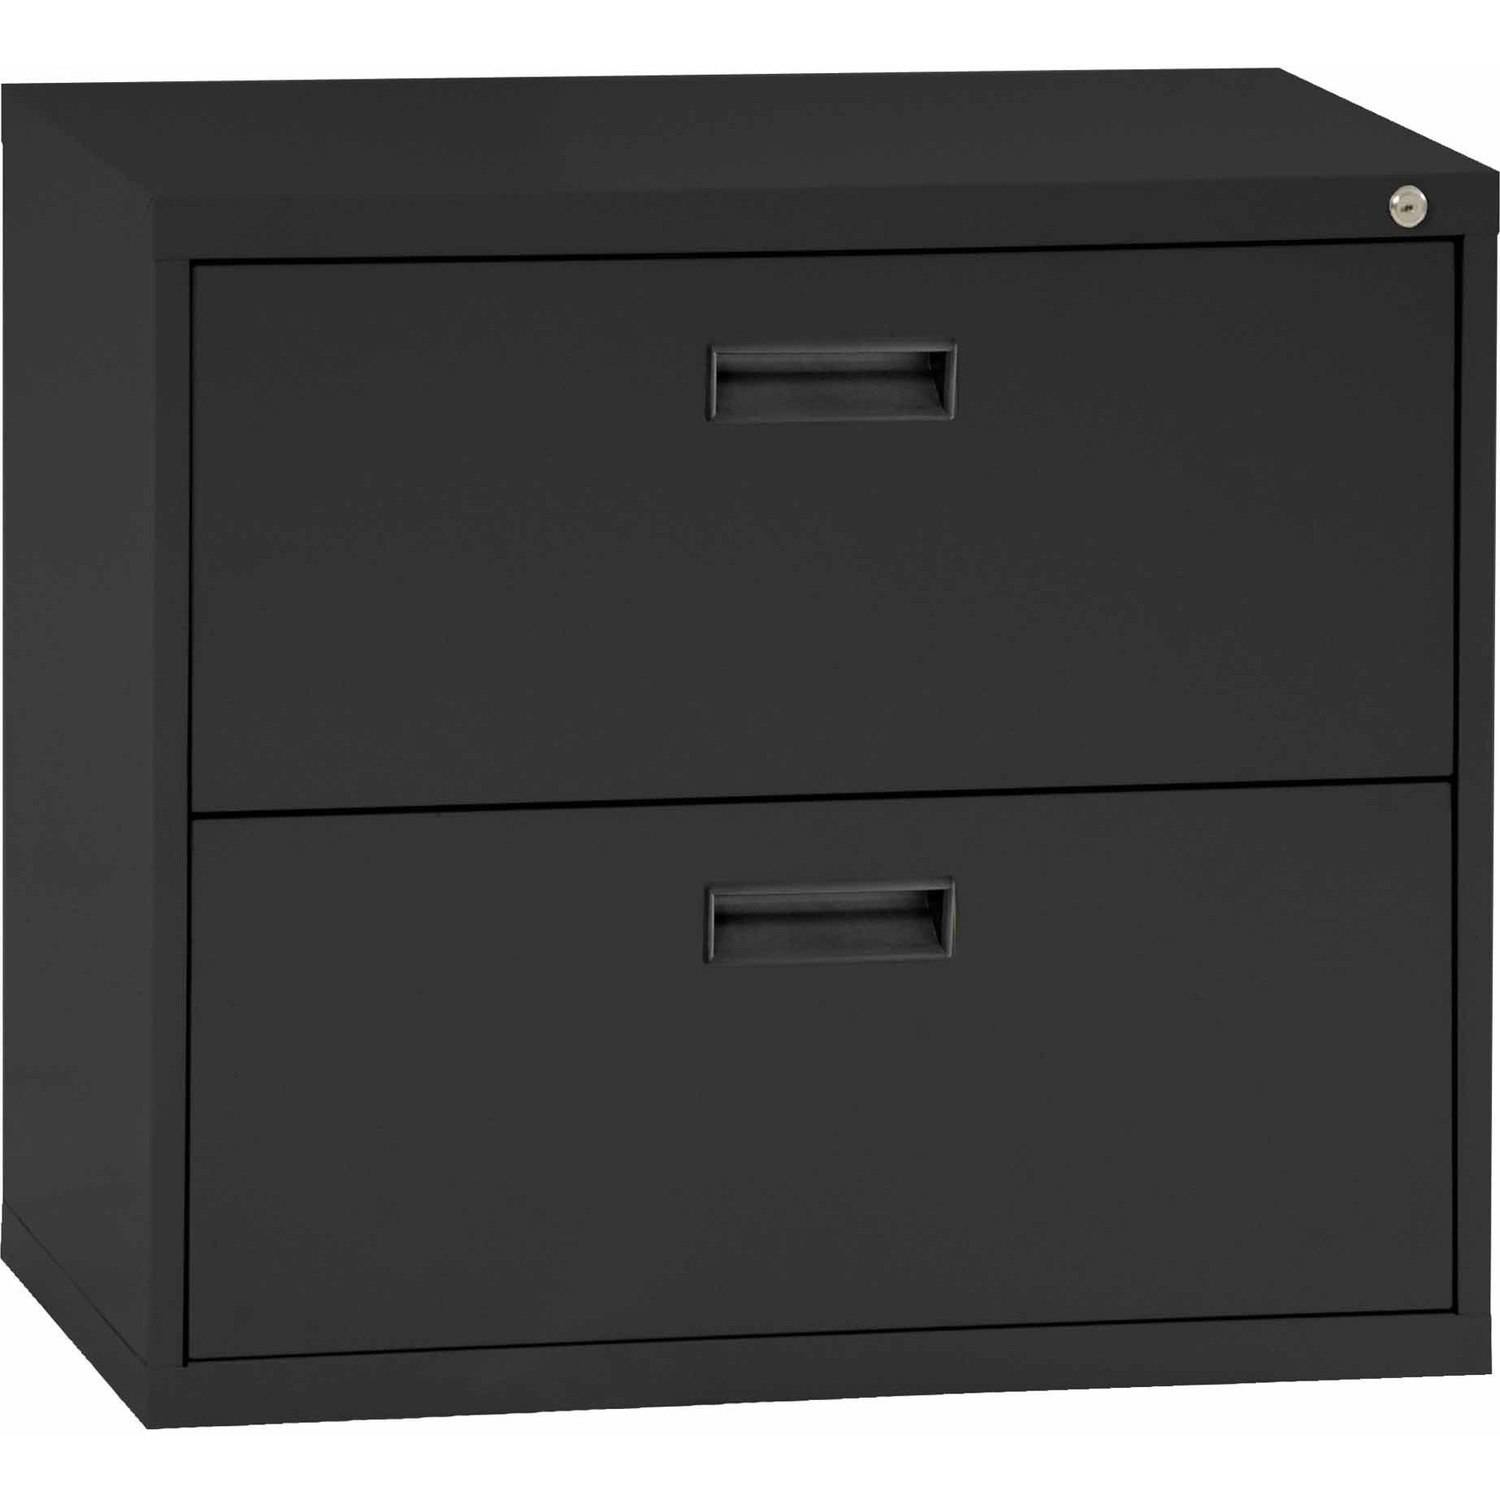 Sandusky Steel Lateral File Cabinet With Plastic Handle, 2 Drawers,  E202L 09   Walmart.com